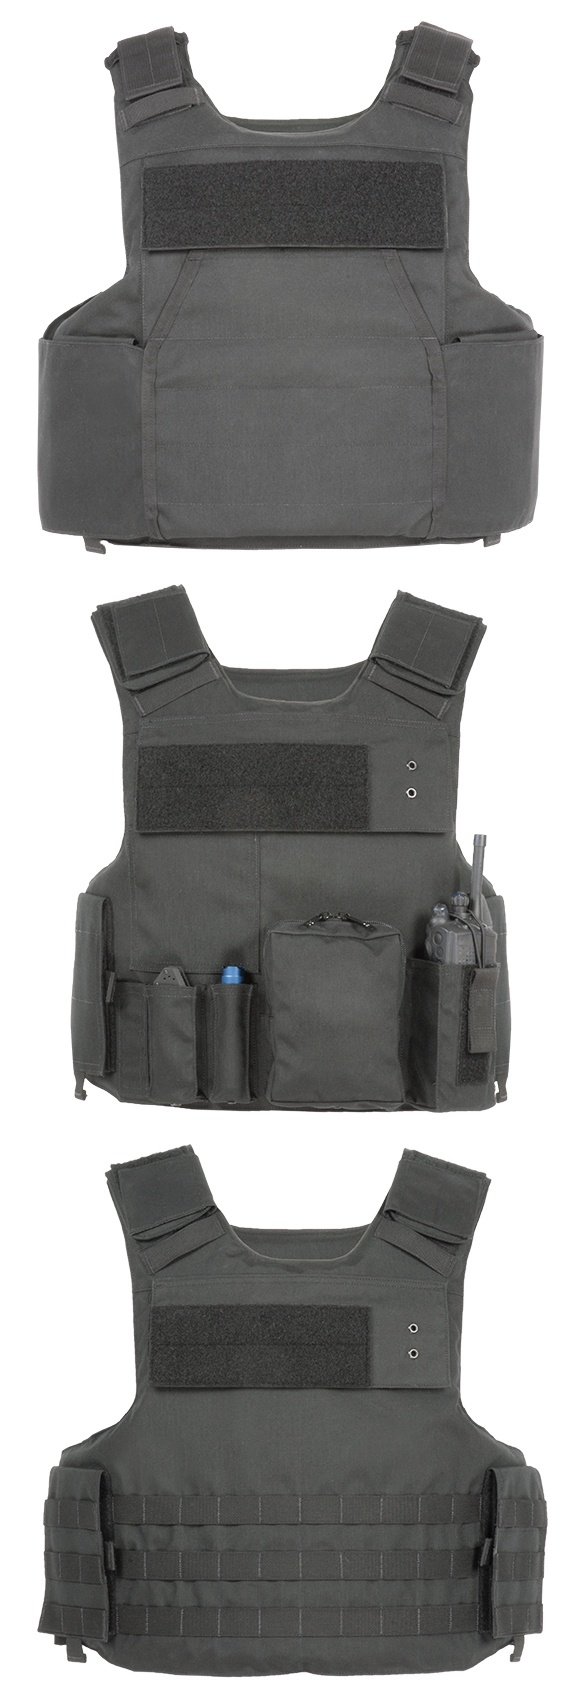 Soft Body Armor Carrier-Molle Style